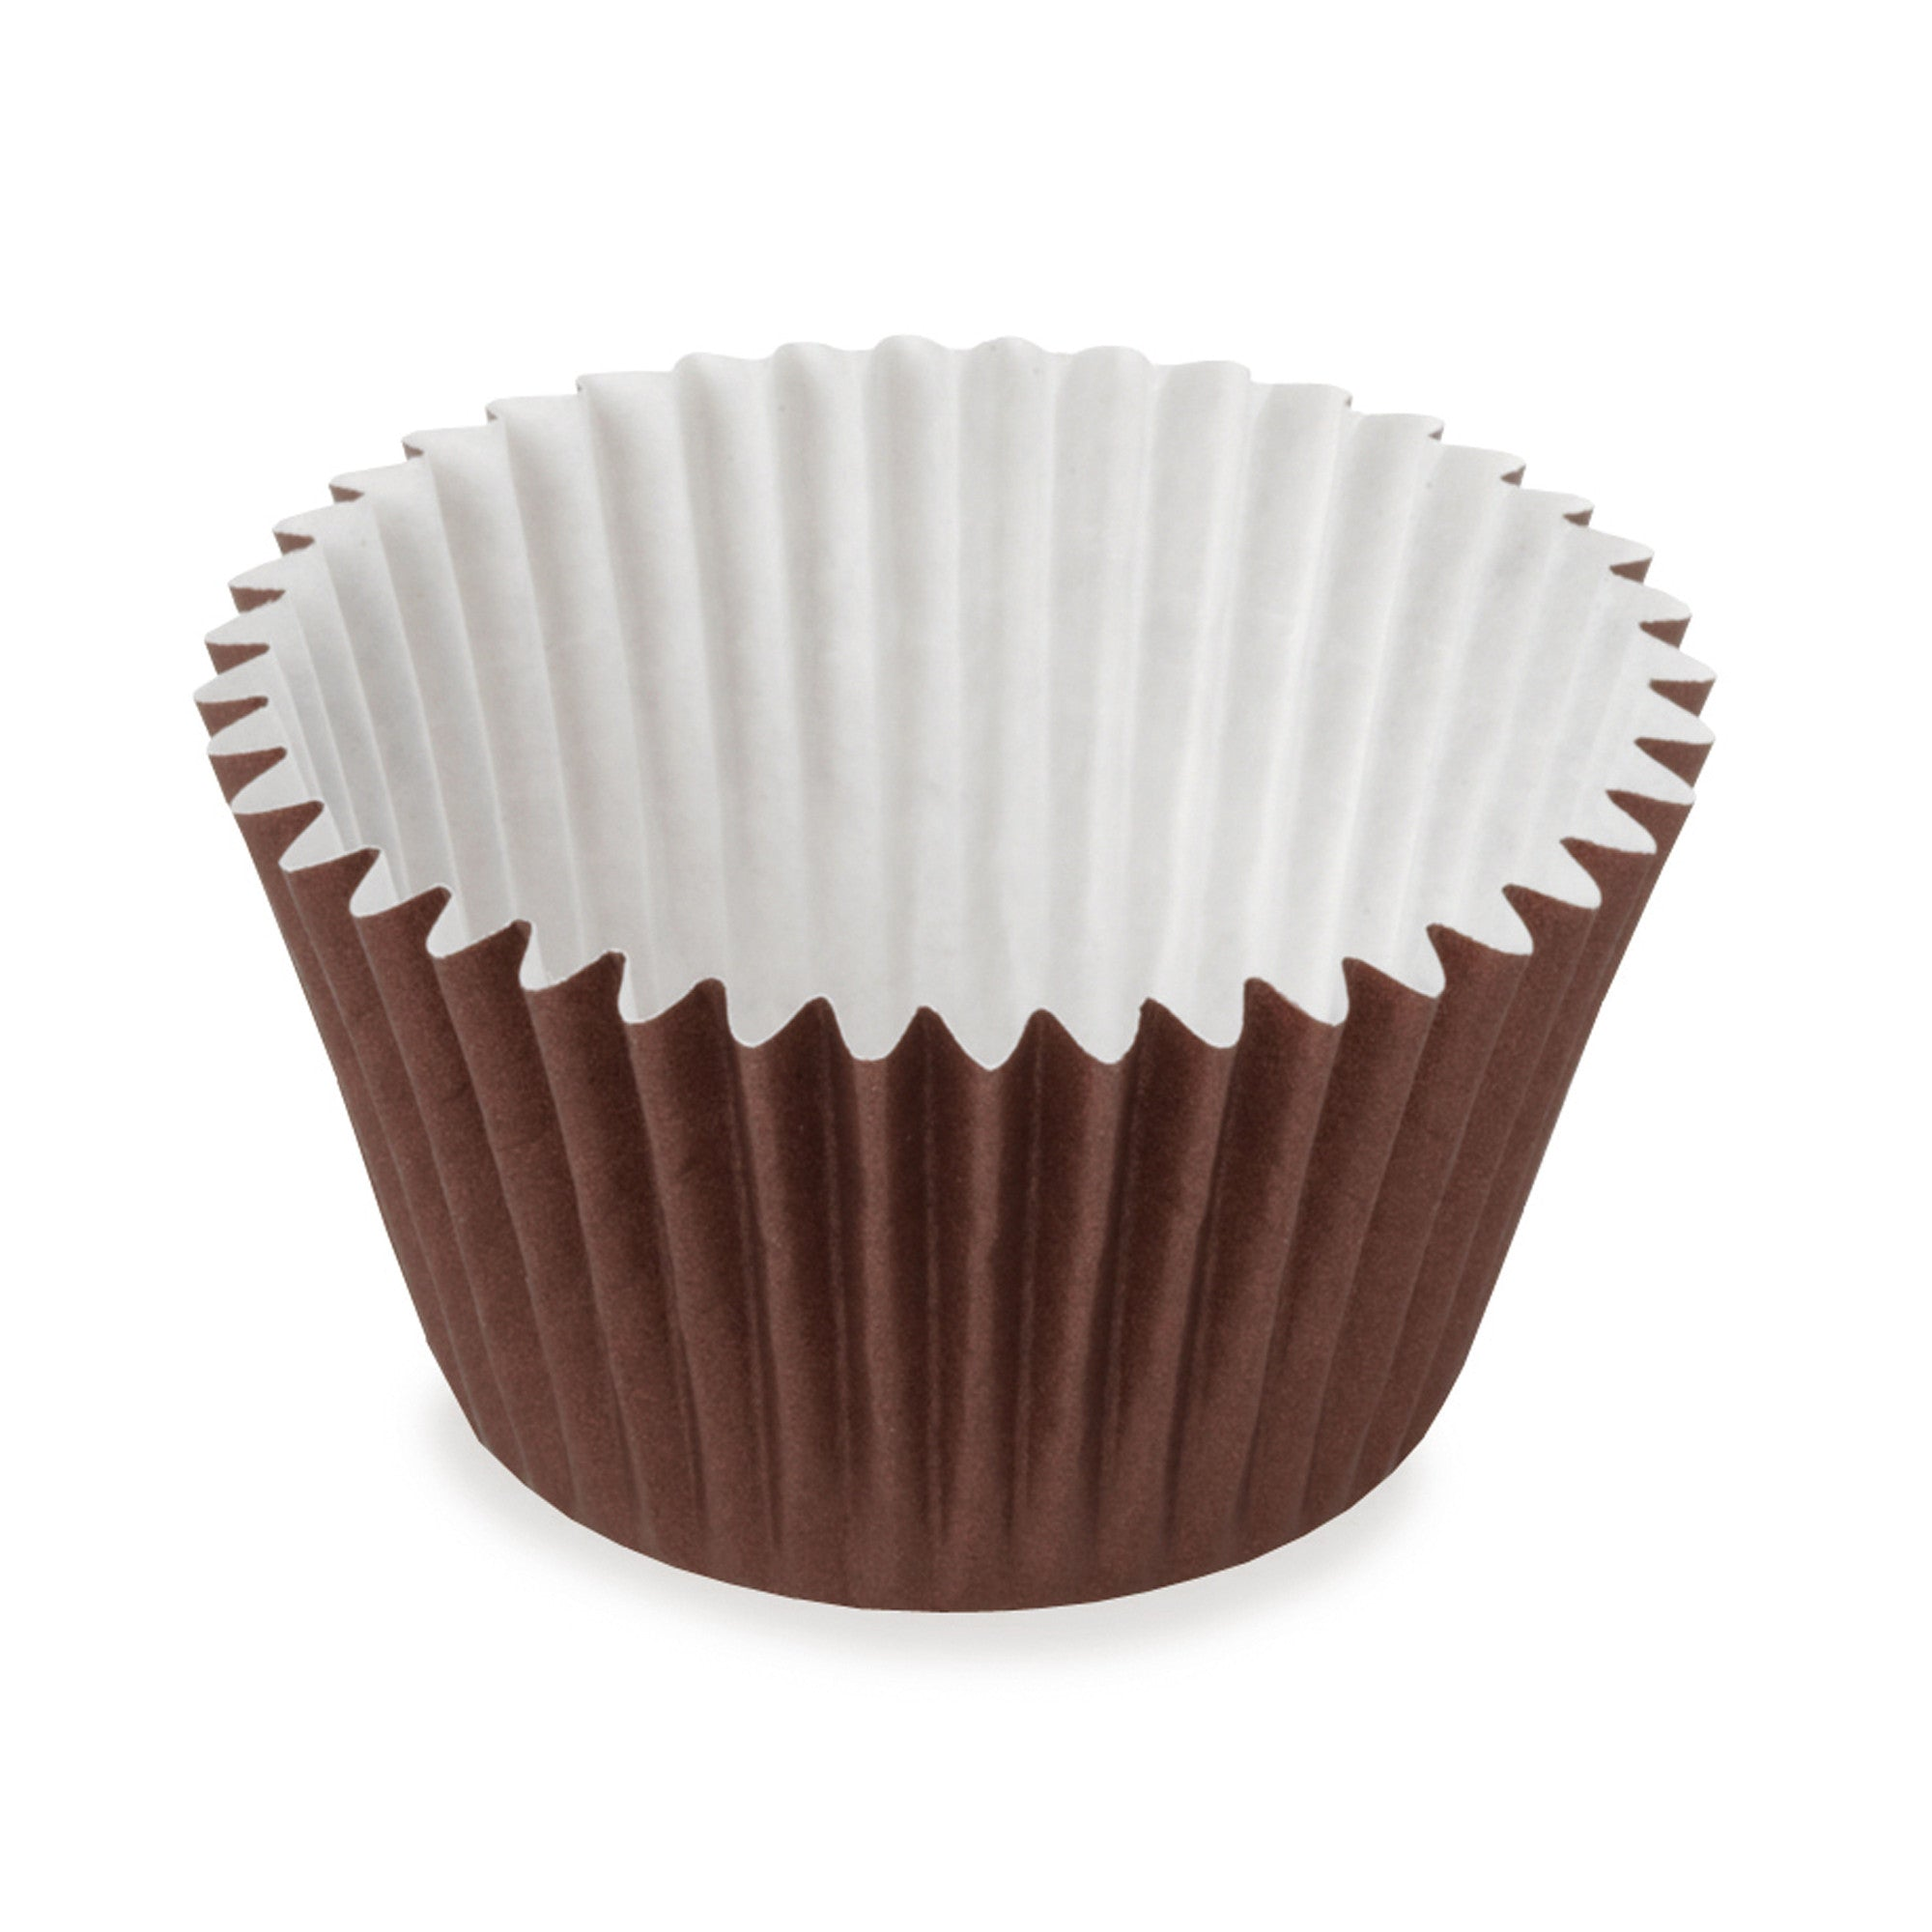 Cupcake Baking Cups, SWC255 - Welcome Home Brands